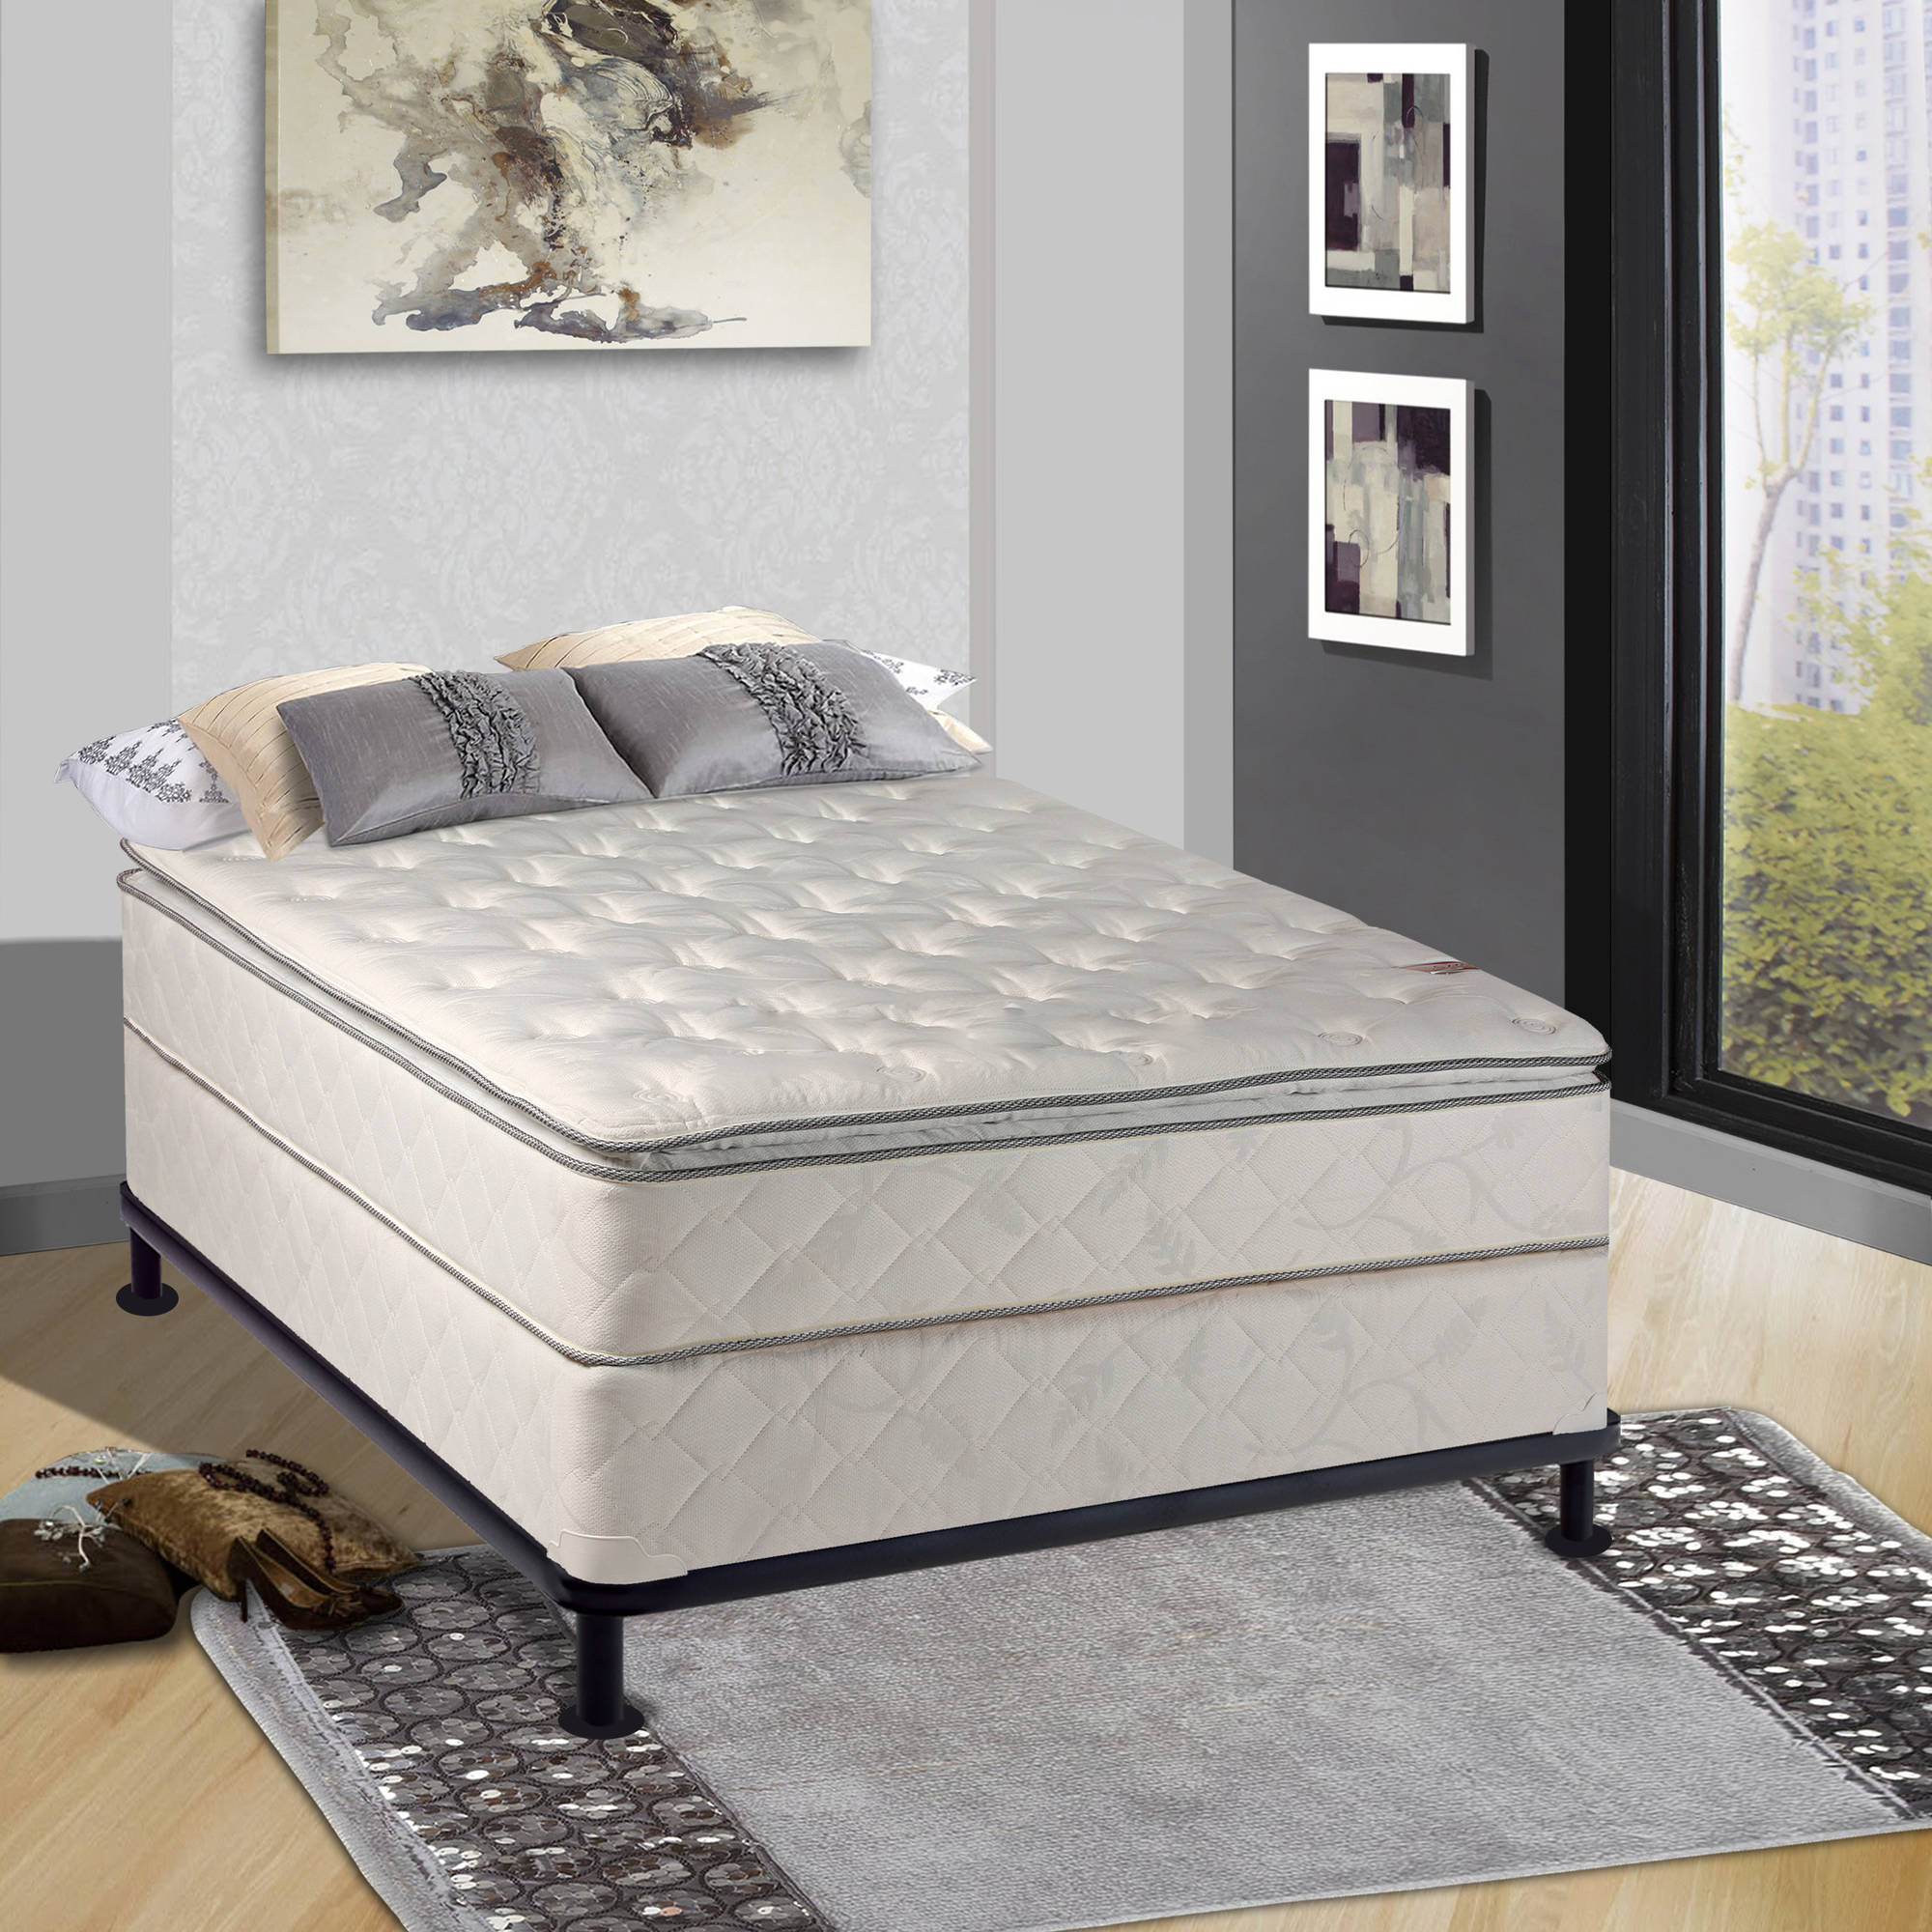 continental sleep 10 fully assembled pillow top innerspring